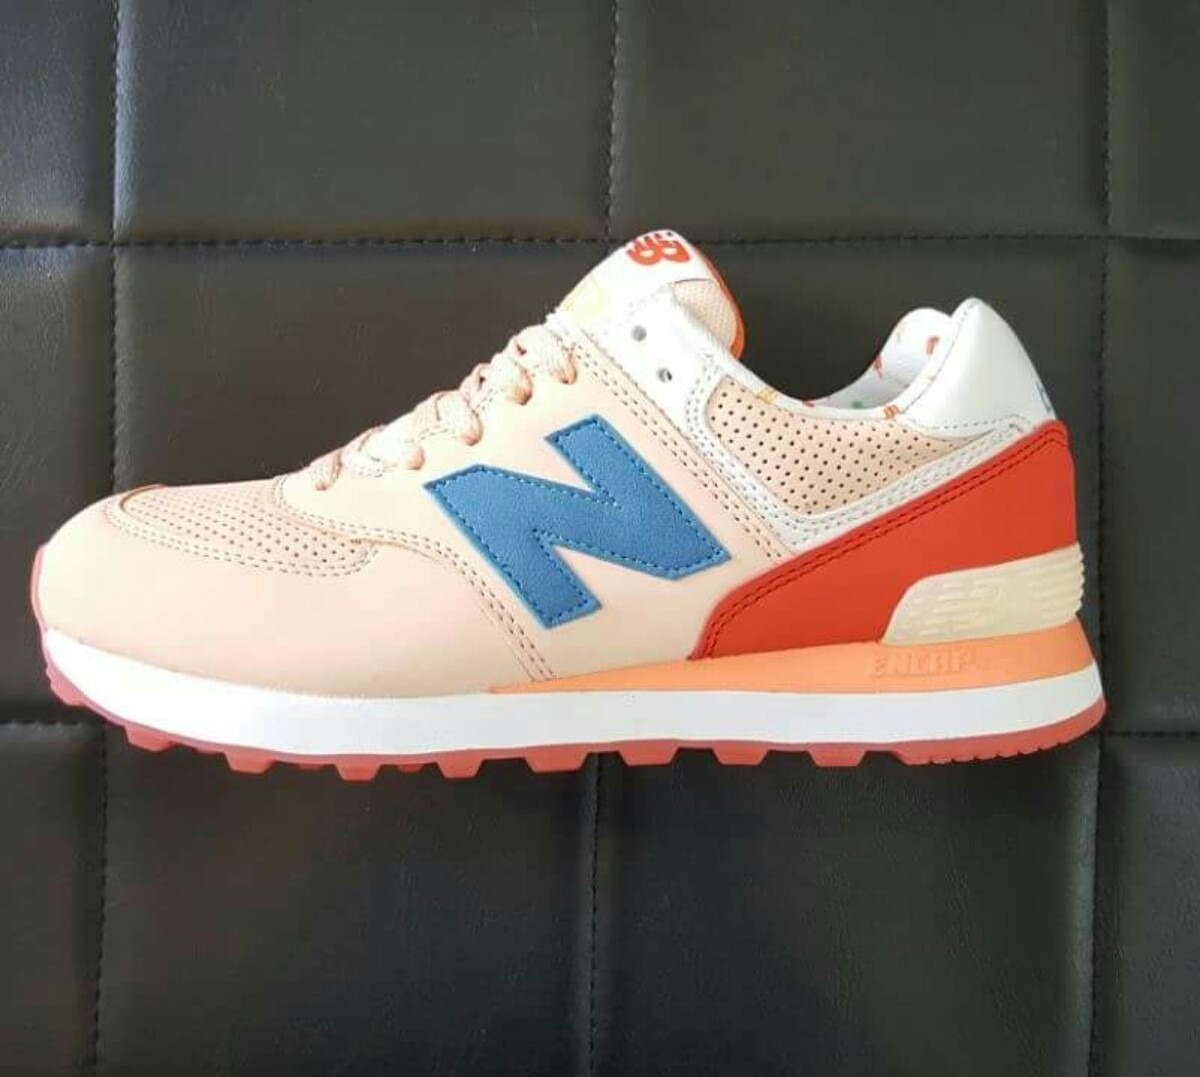 8ec5068d880 ... buy new balance 574. cargando zoom. 2ed3a 56166